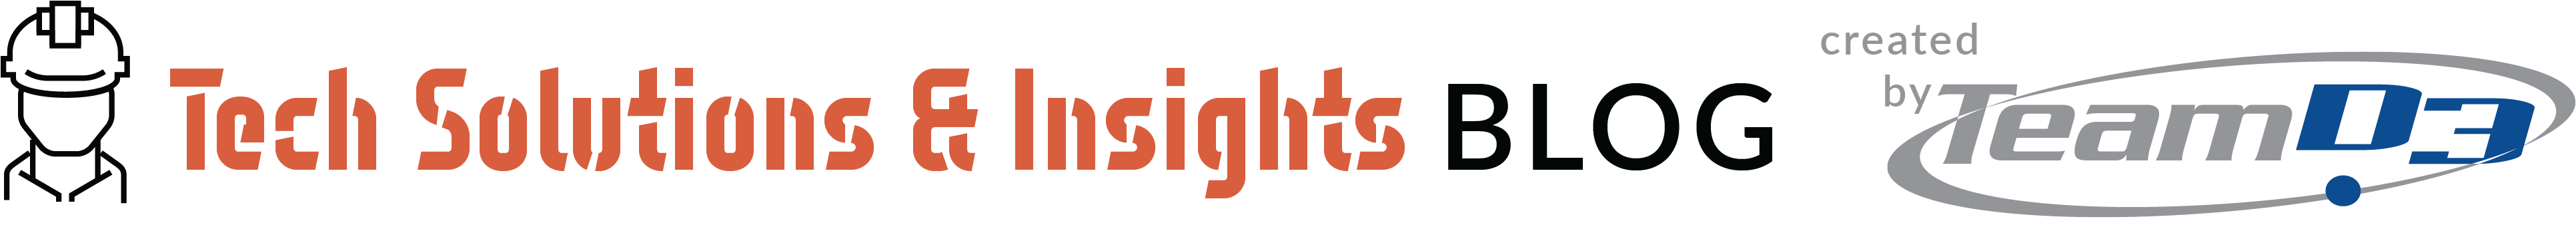 Tech Solutions & Insights Blog logo - With dude-2